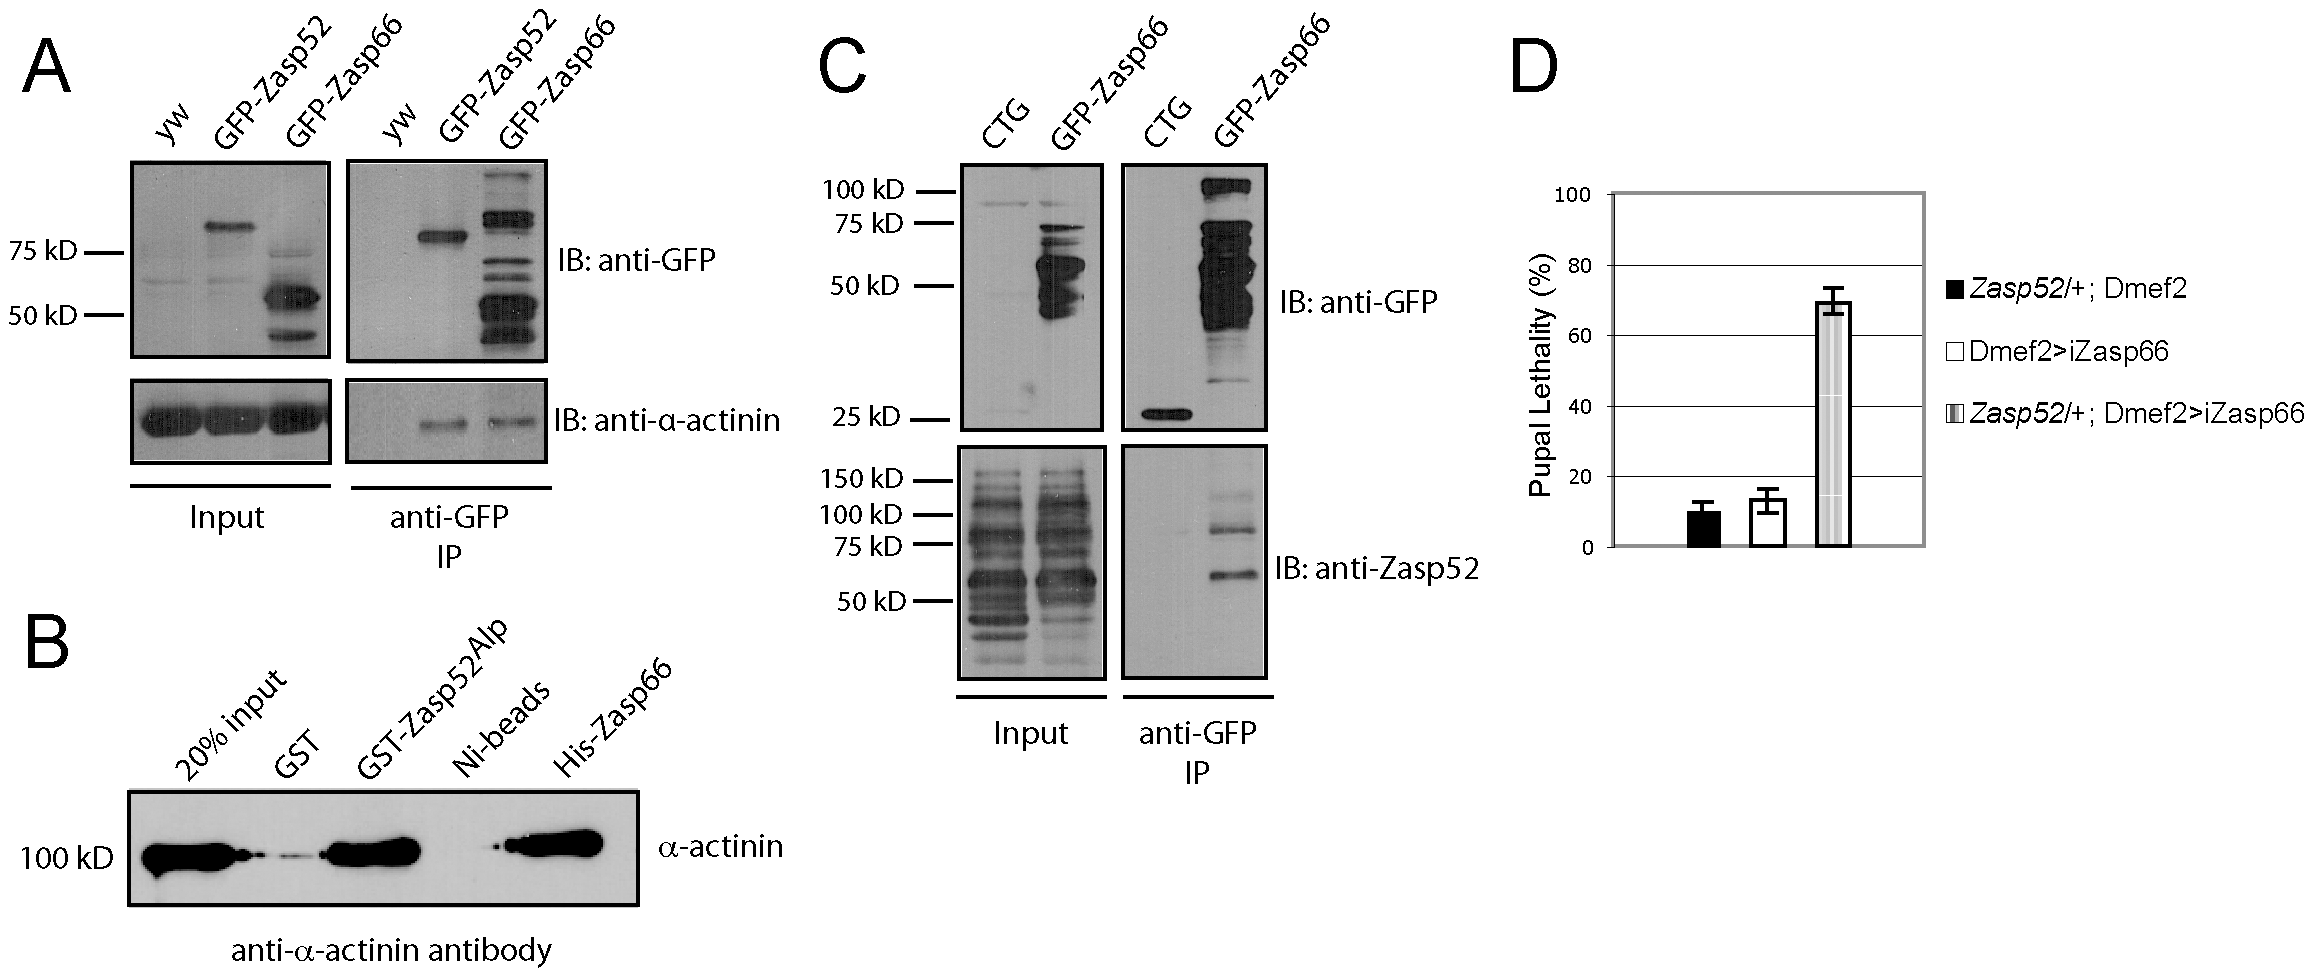 Zasp52 and Zasp66 both bind α-actinin and genetically interact.